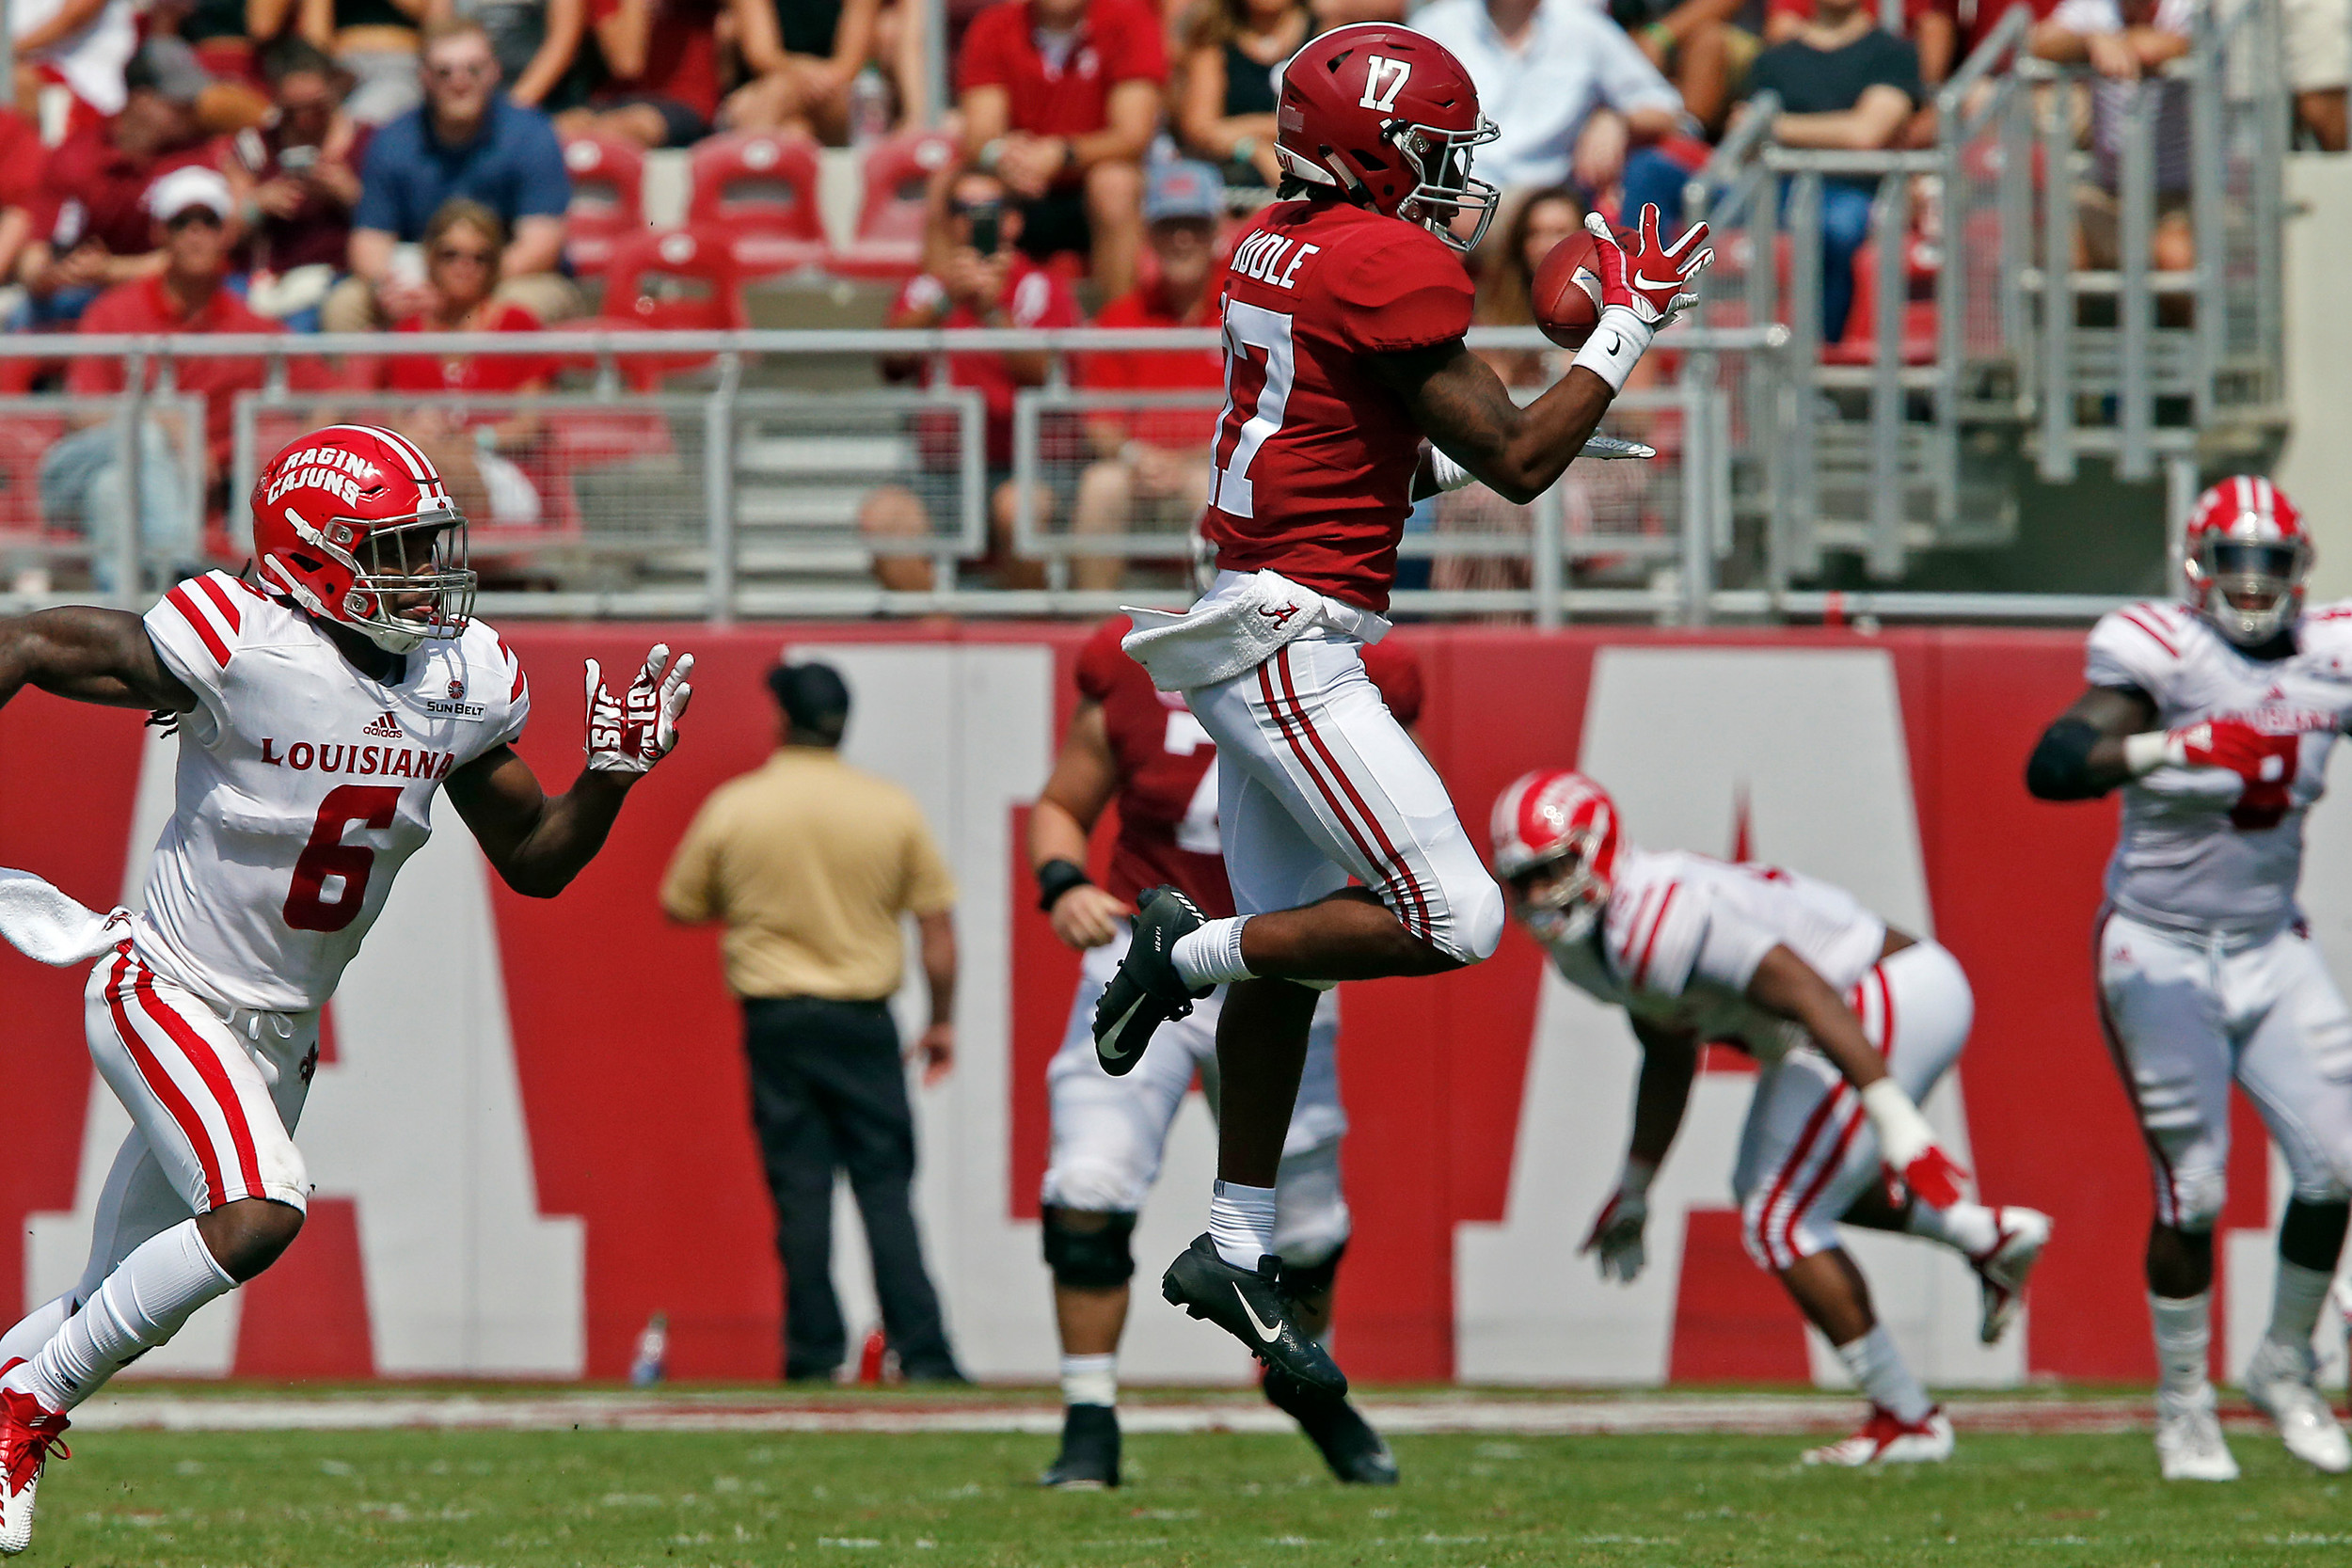 Alabama Crimson Tide wide receiver Jaylen Waddle (17) goes to the air to pull in a pass at Bryant-Denny Stadium in Tuscaloosa, Al on September 29, 2018. Jason Clark / Daily Mountain Eagle